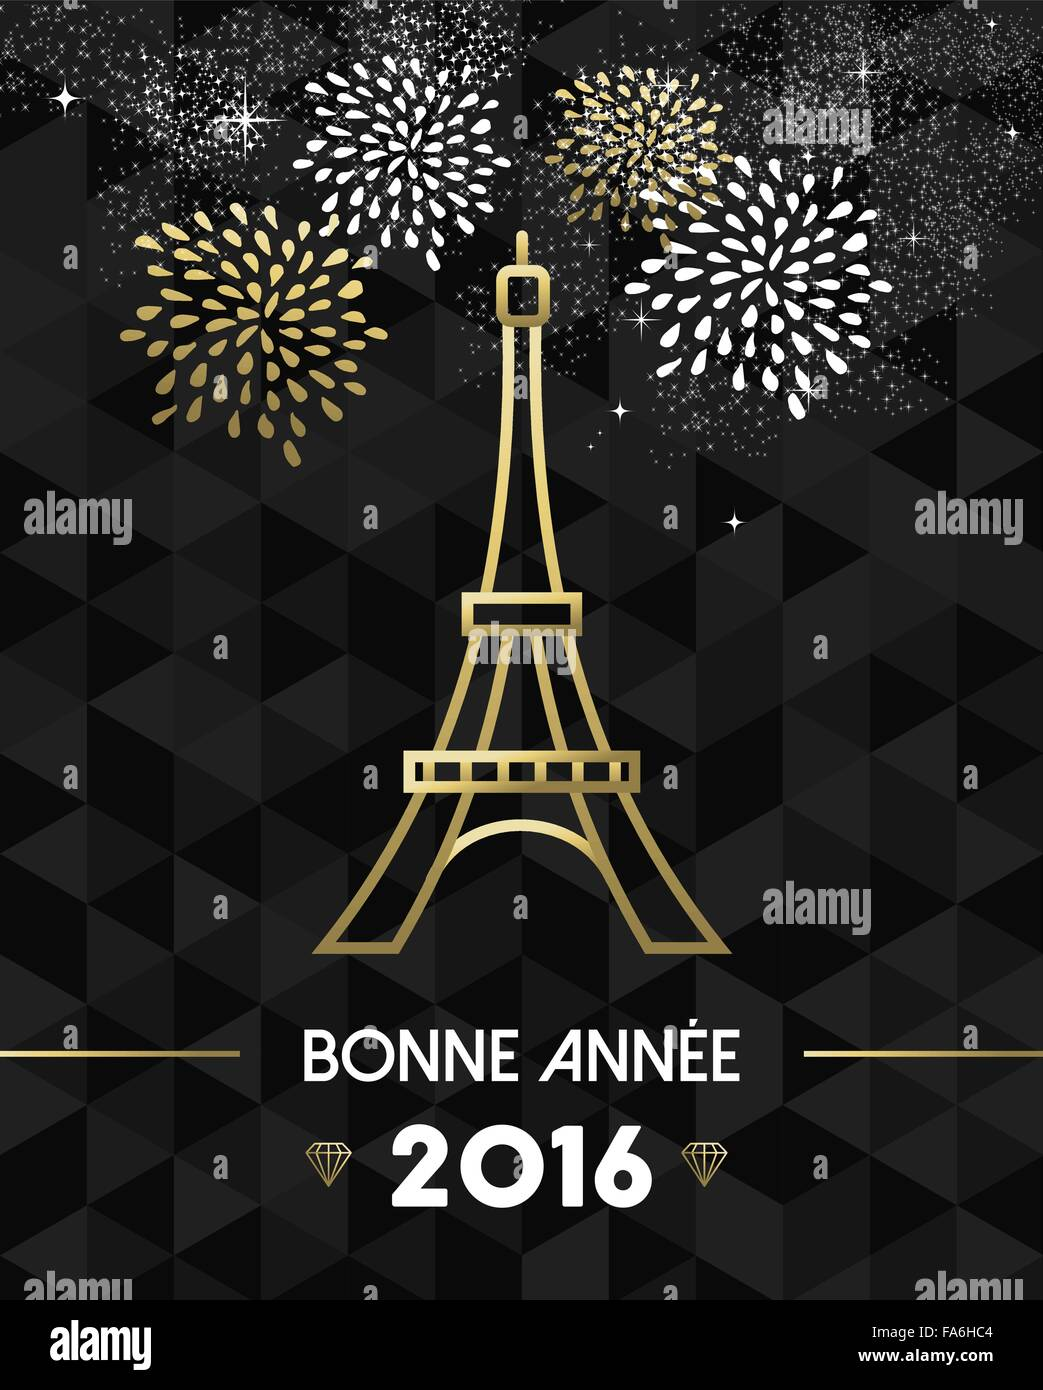 happy new year 2016 paris greeting card with france monument eiffel tower in gold outline style eps10 vector